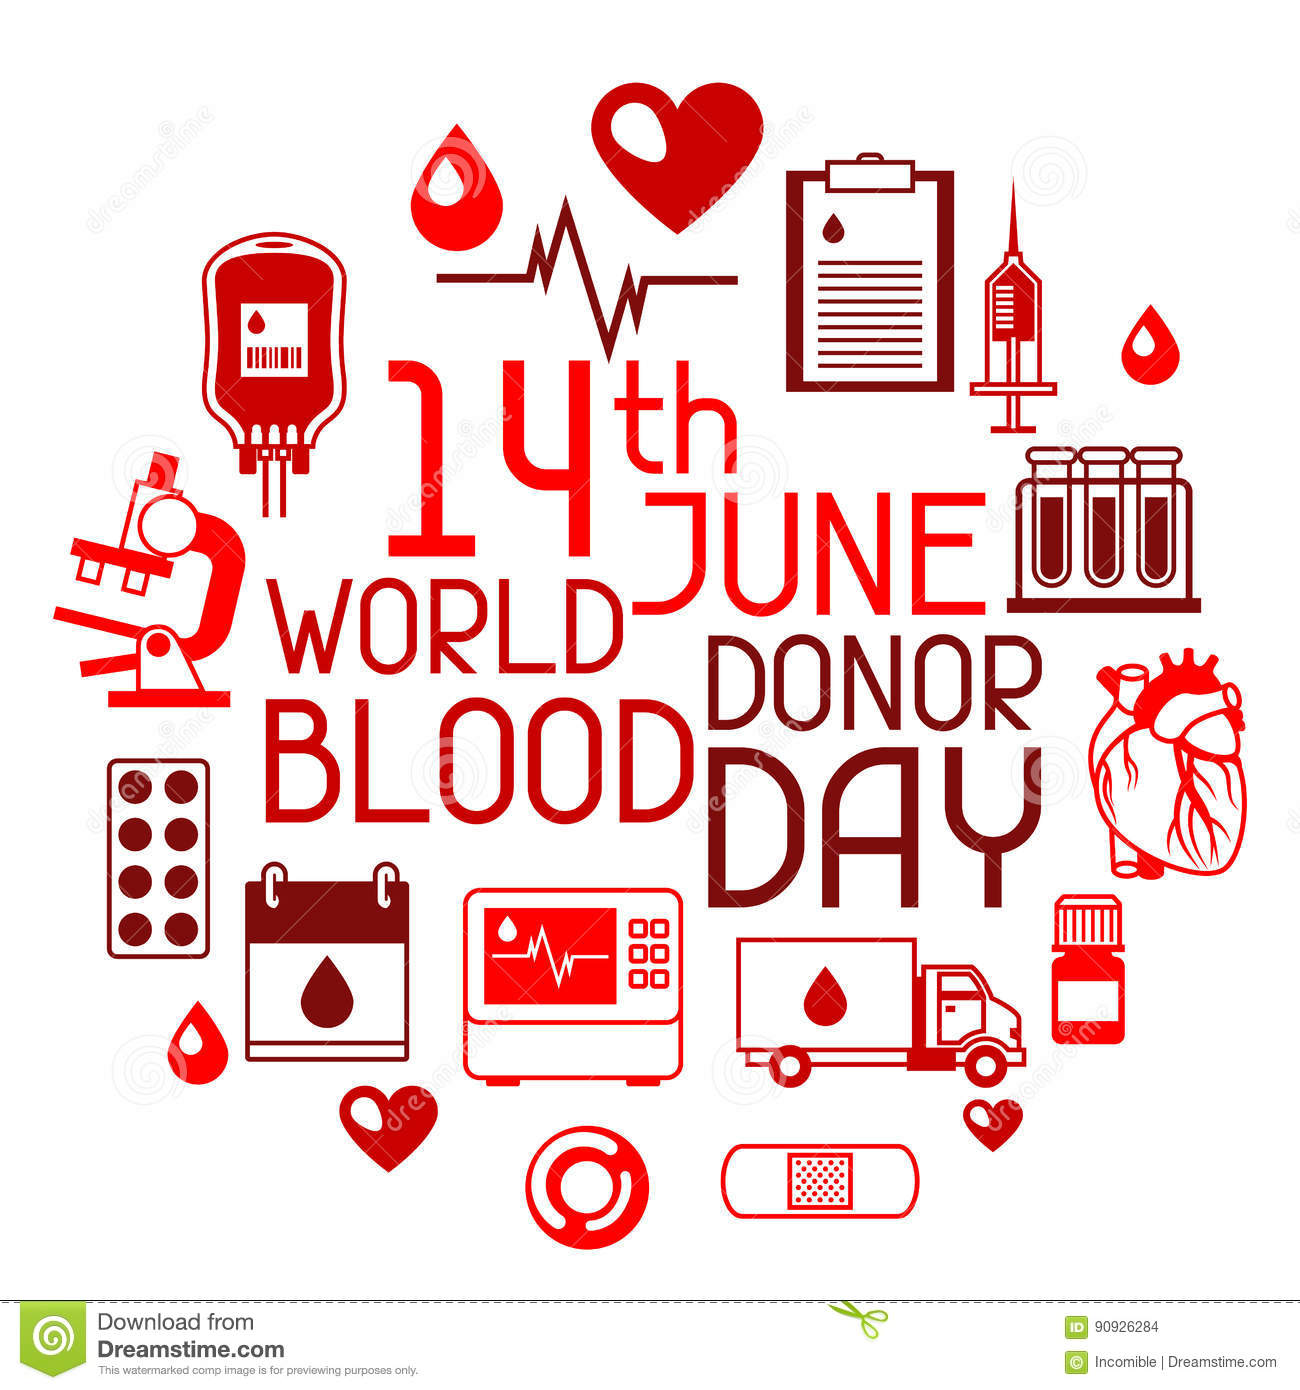 14th June World Blood Donor Day